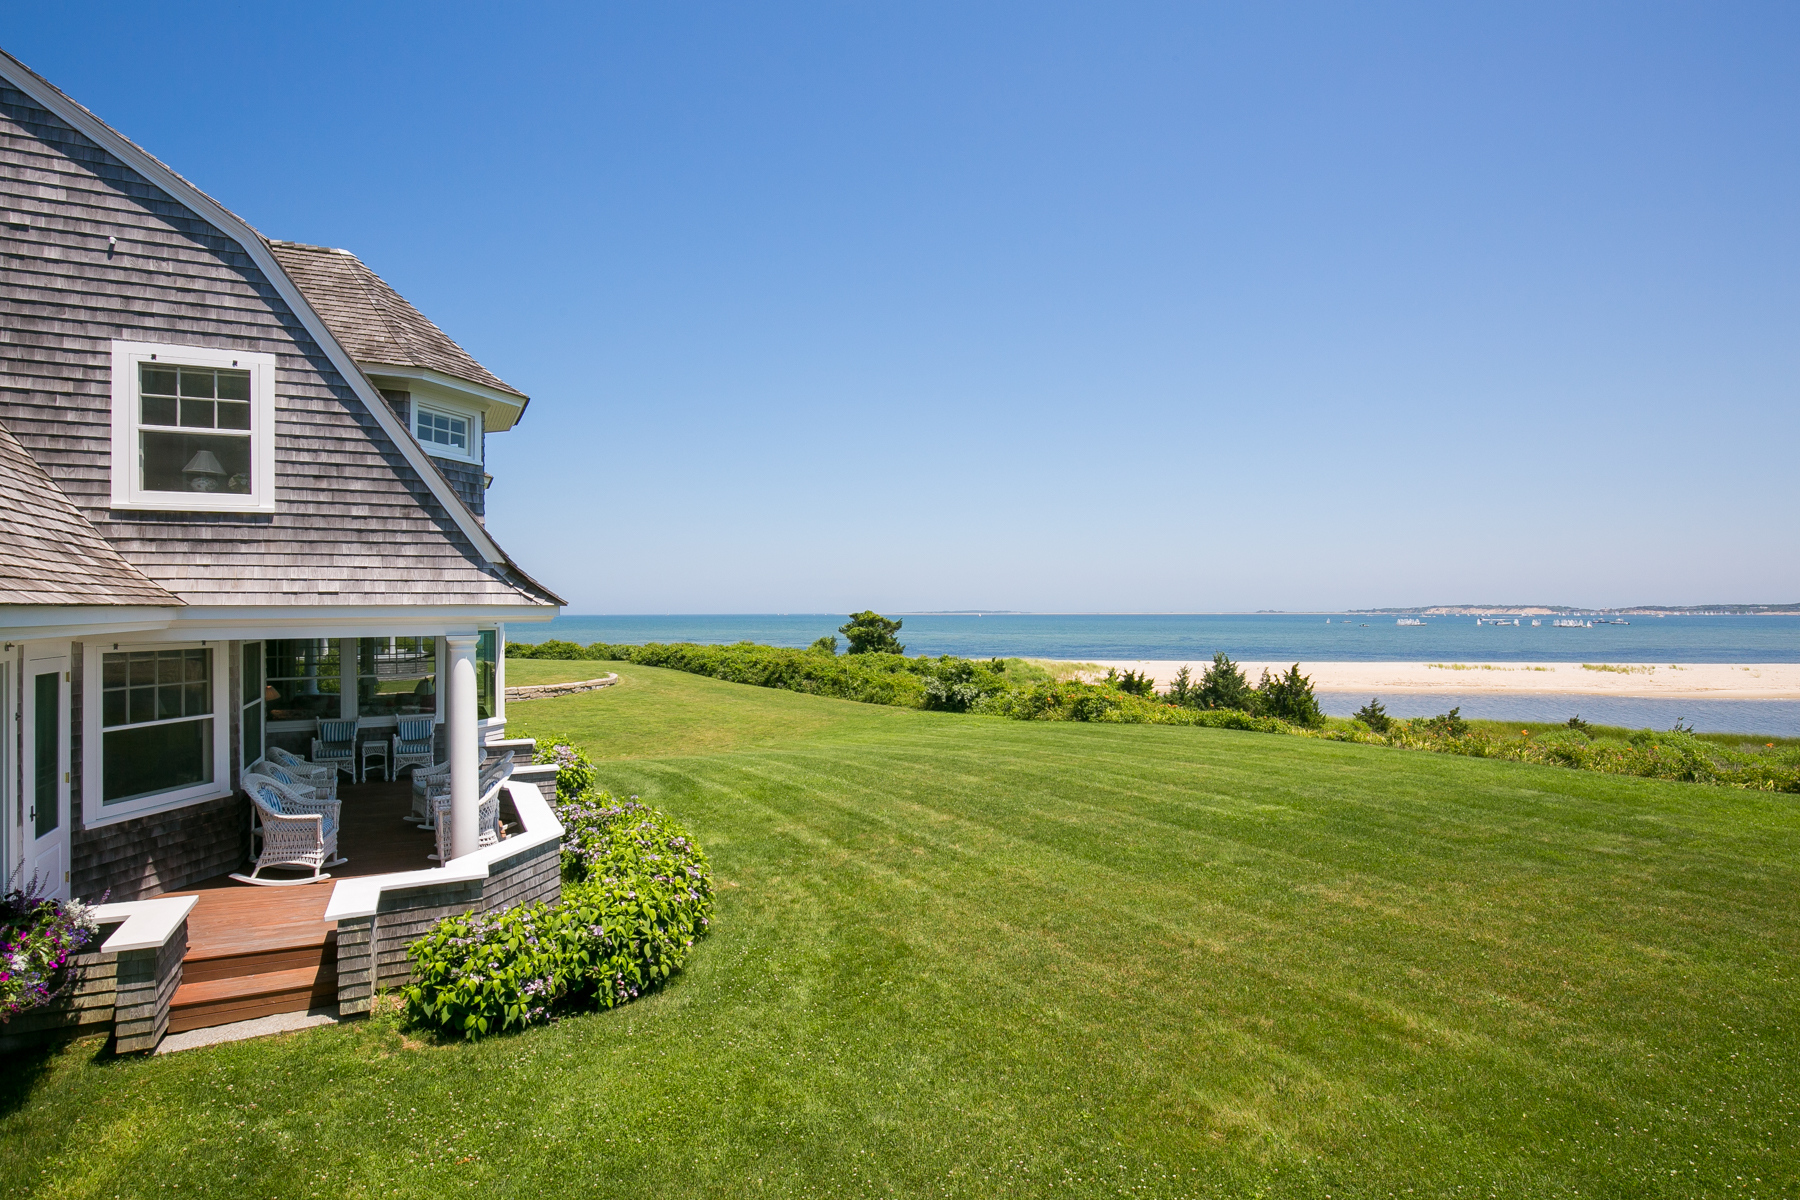 Casa Unifamiliar por un Venta en Edgartown Harbor Waterfront Estate 7 Starbuck Neck Road Edgartown, Massachusetts 02539 Estados Unidos